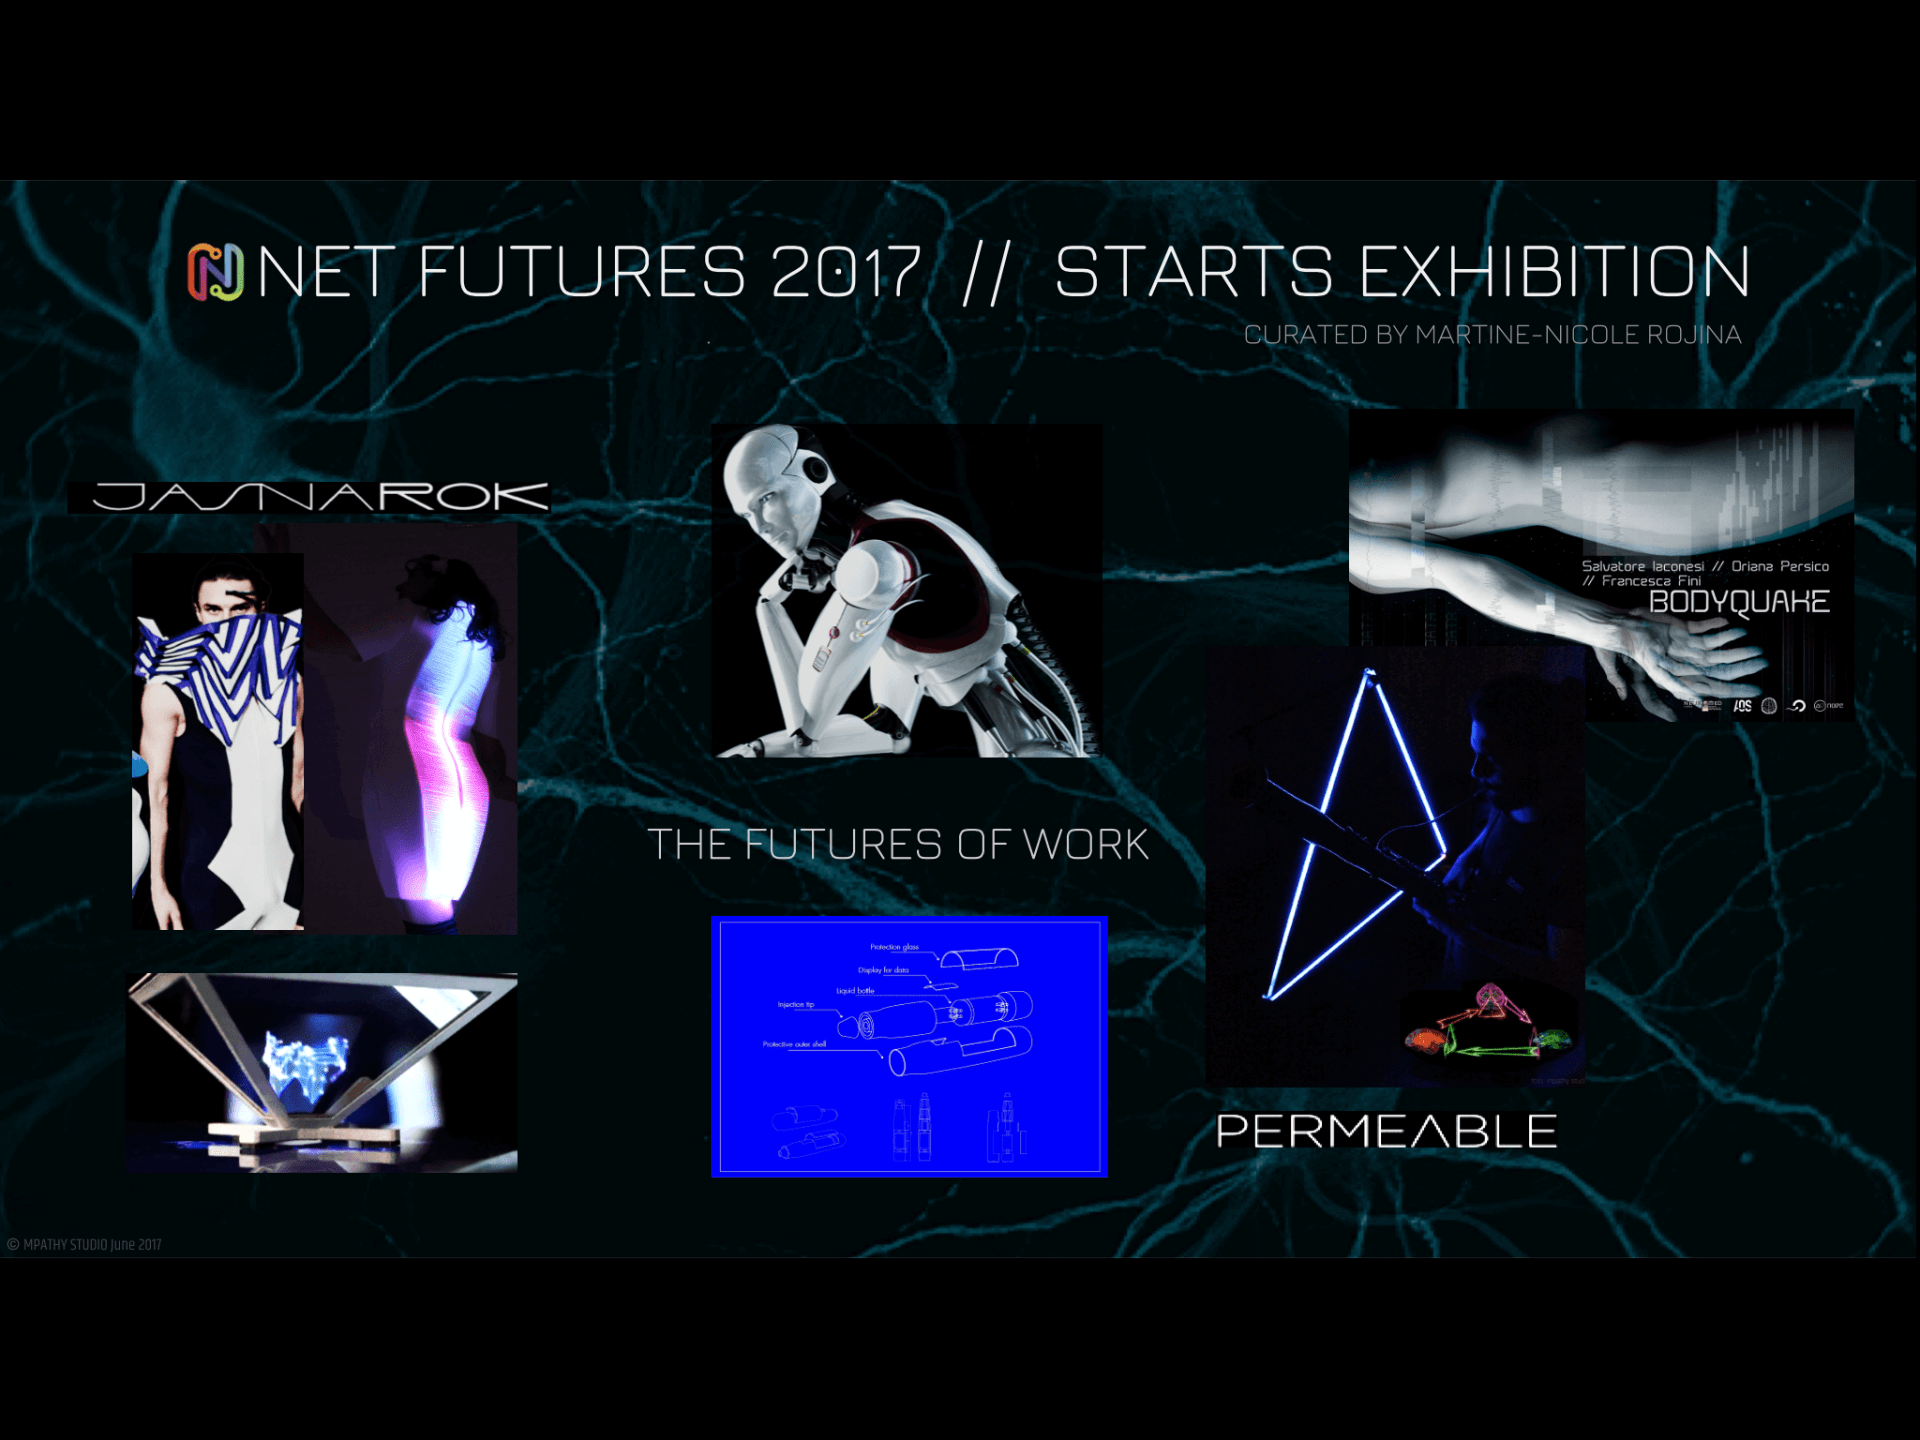 Stars Exhibit, NetFutures2017